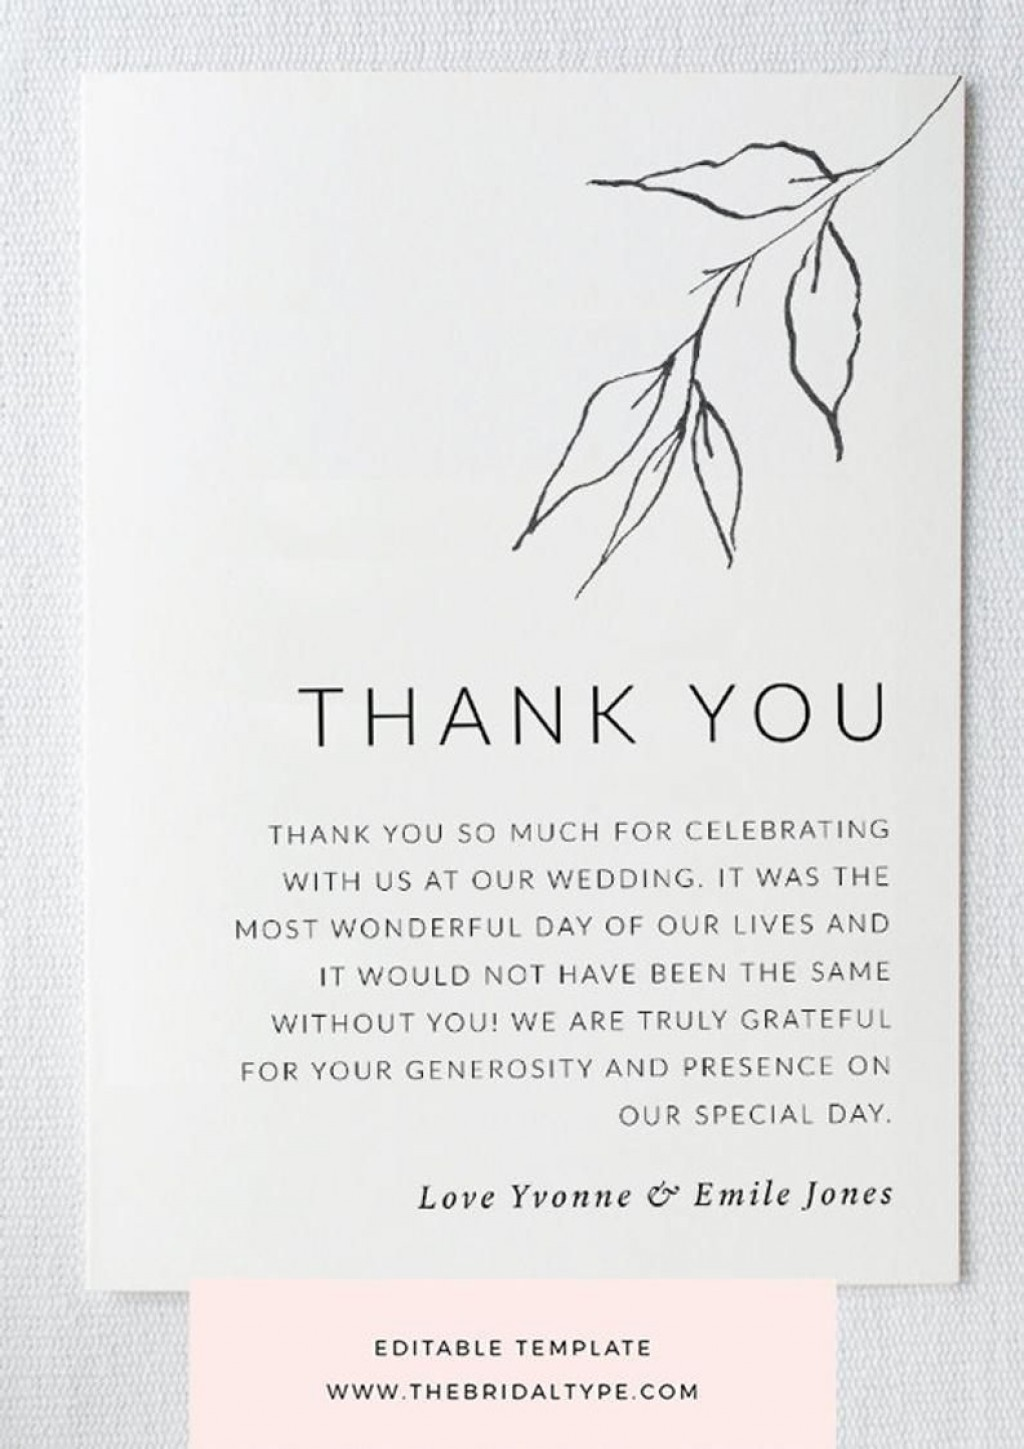 003 Impressive Wedding Thank You Note Template Concept  Templates Shower Card Etsy Bridal FormatLarge